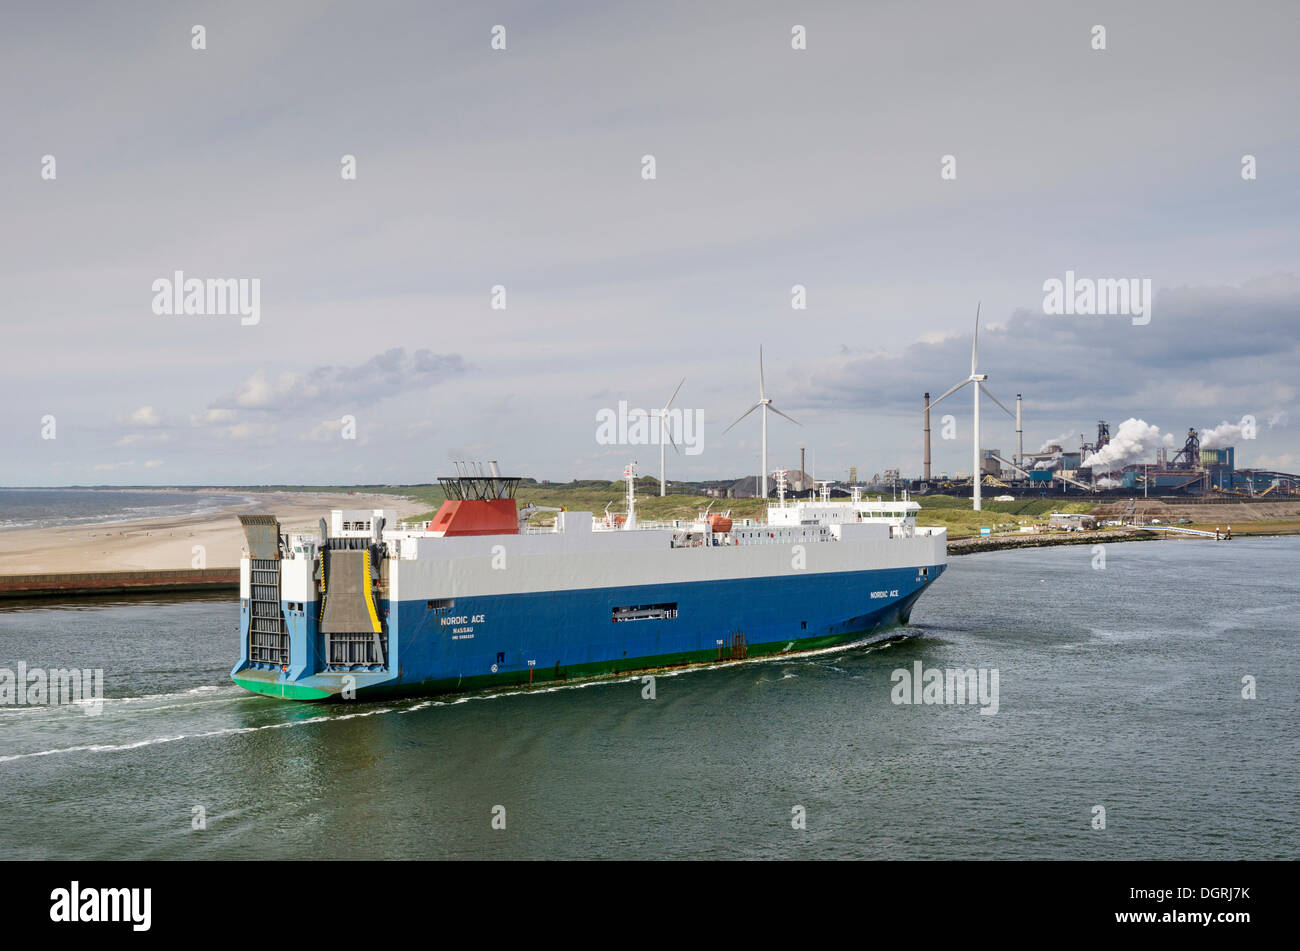 Nordic Ace car ferry approaching the port of Ijmuiden, wind turbines and industrial facilities at the back, North Holland - Stock Image